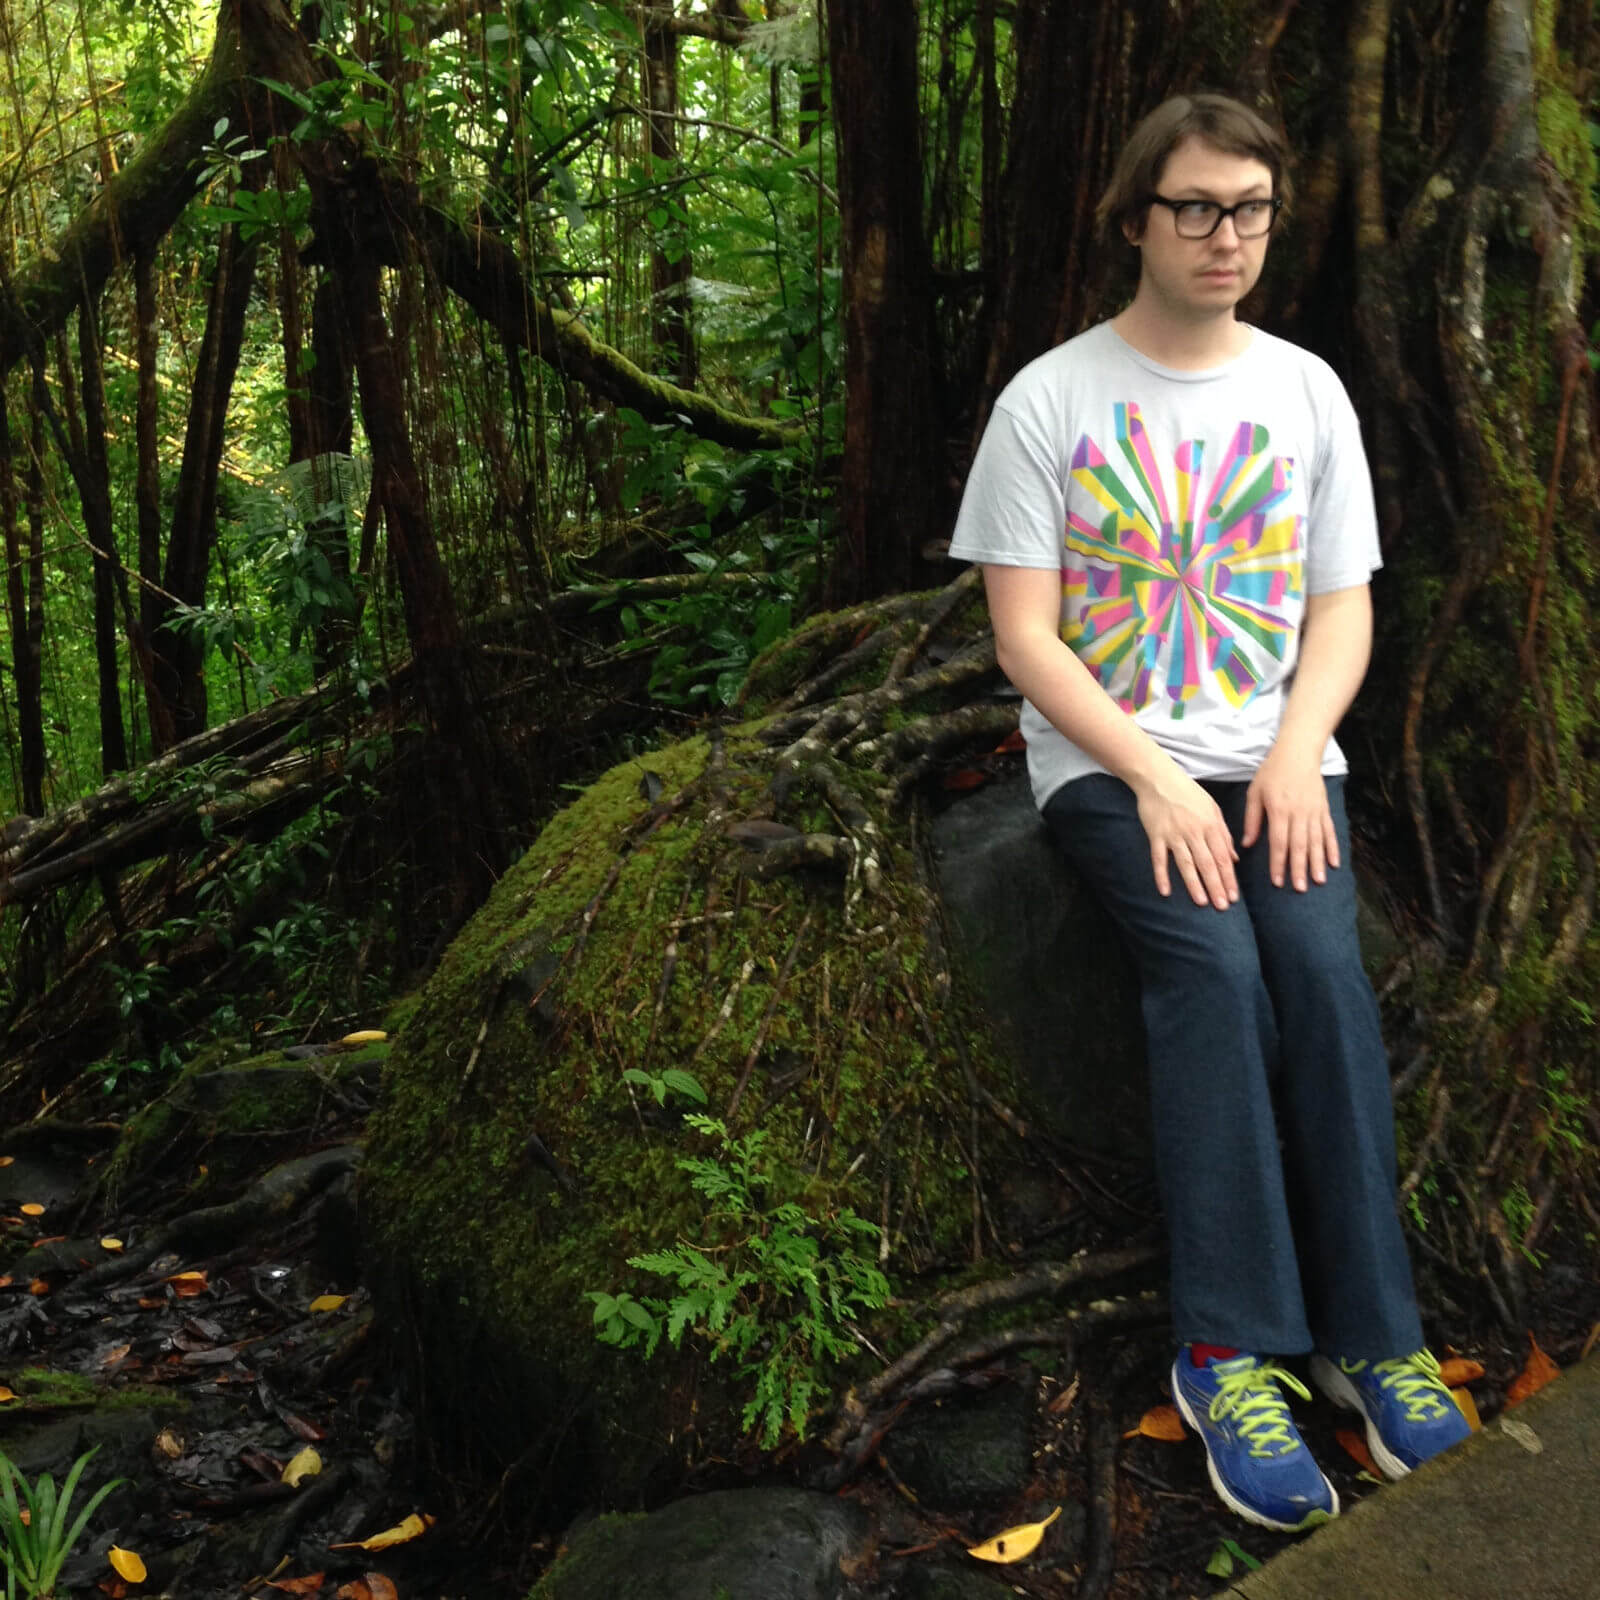 A photograph of Wiley Wiggins at the edge of a rainforest